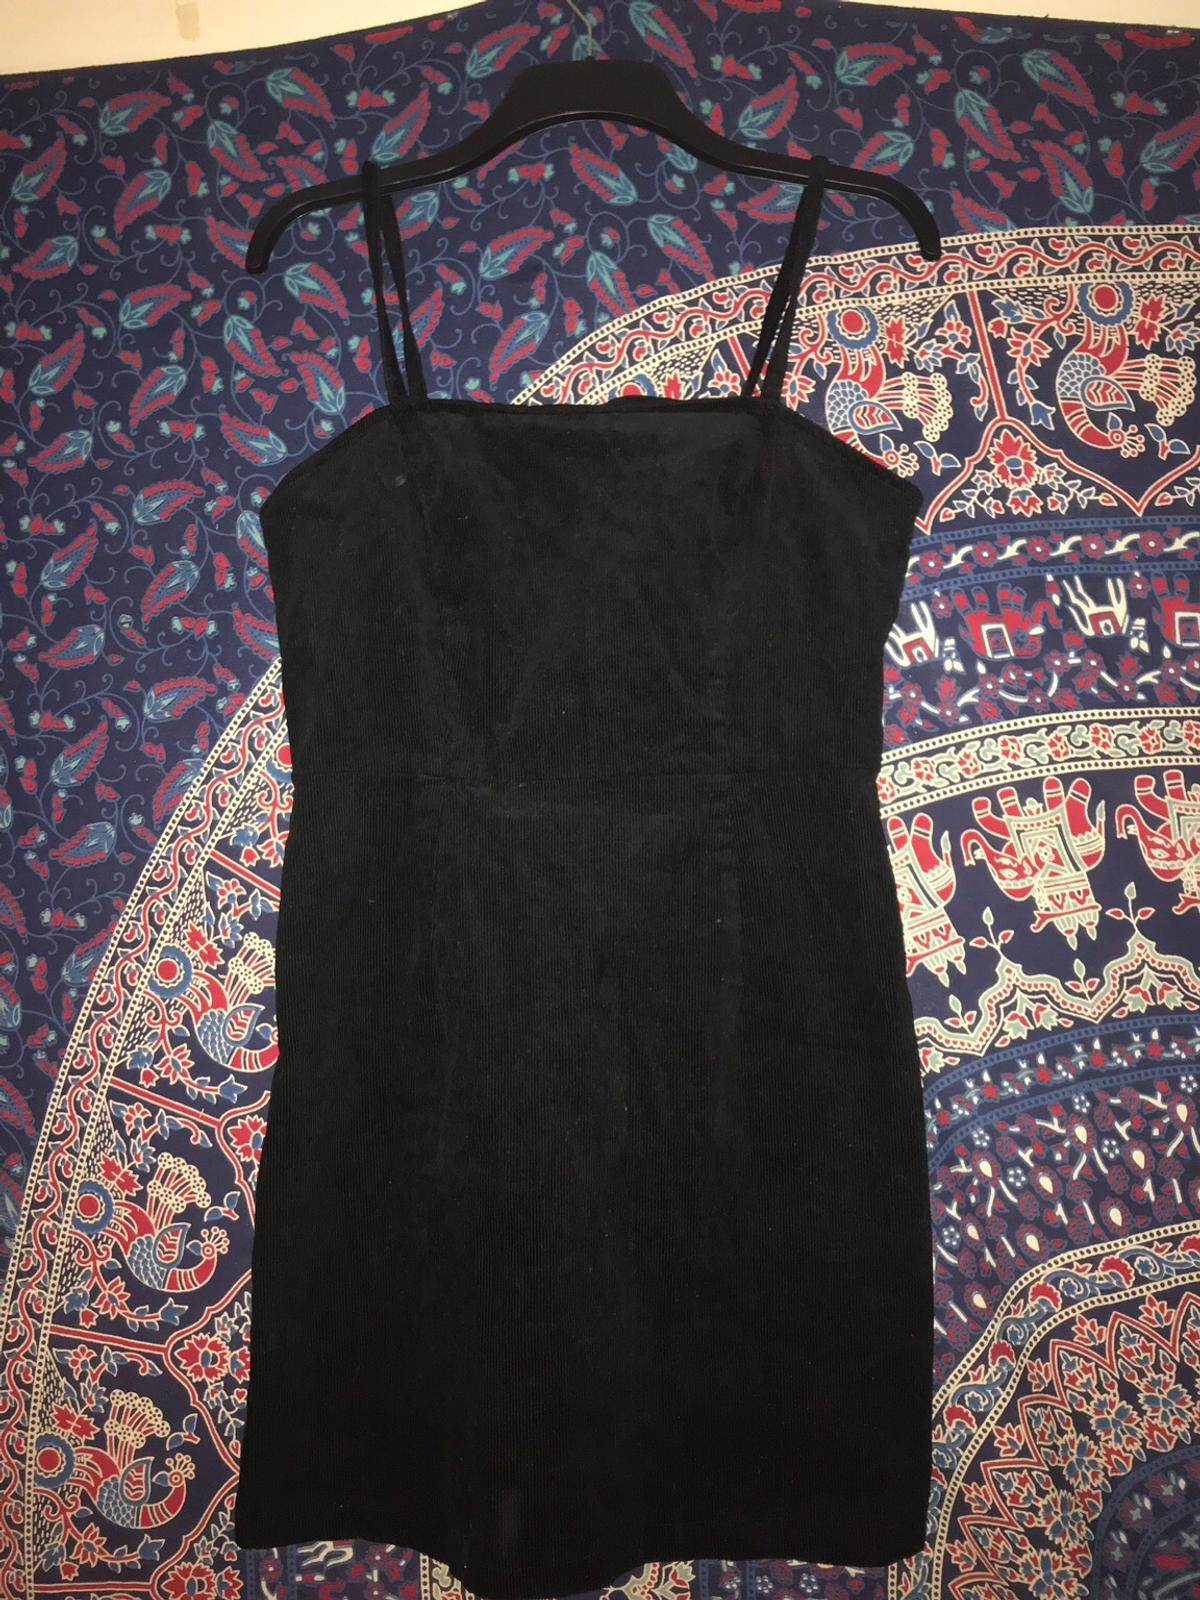 Lovely mini dress Too big for me hence why I'm selling Never worn